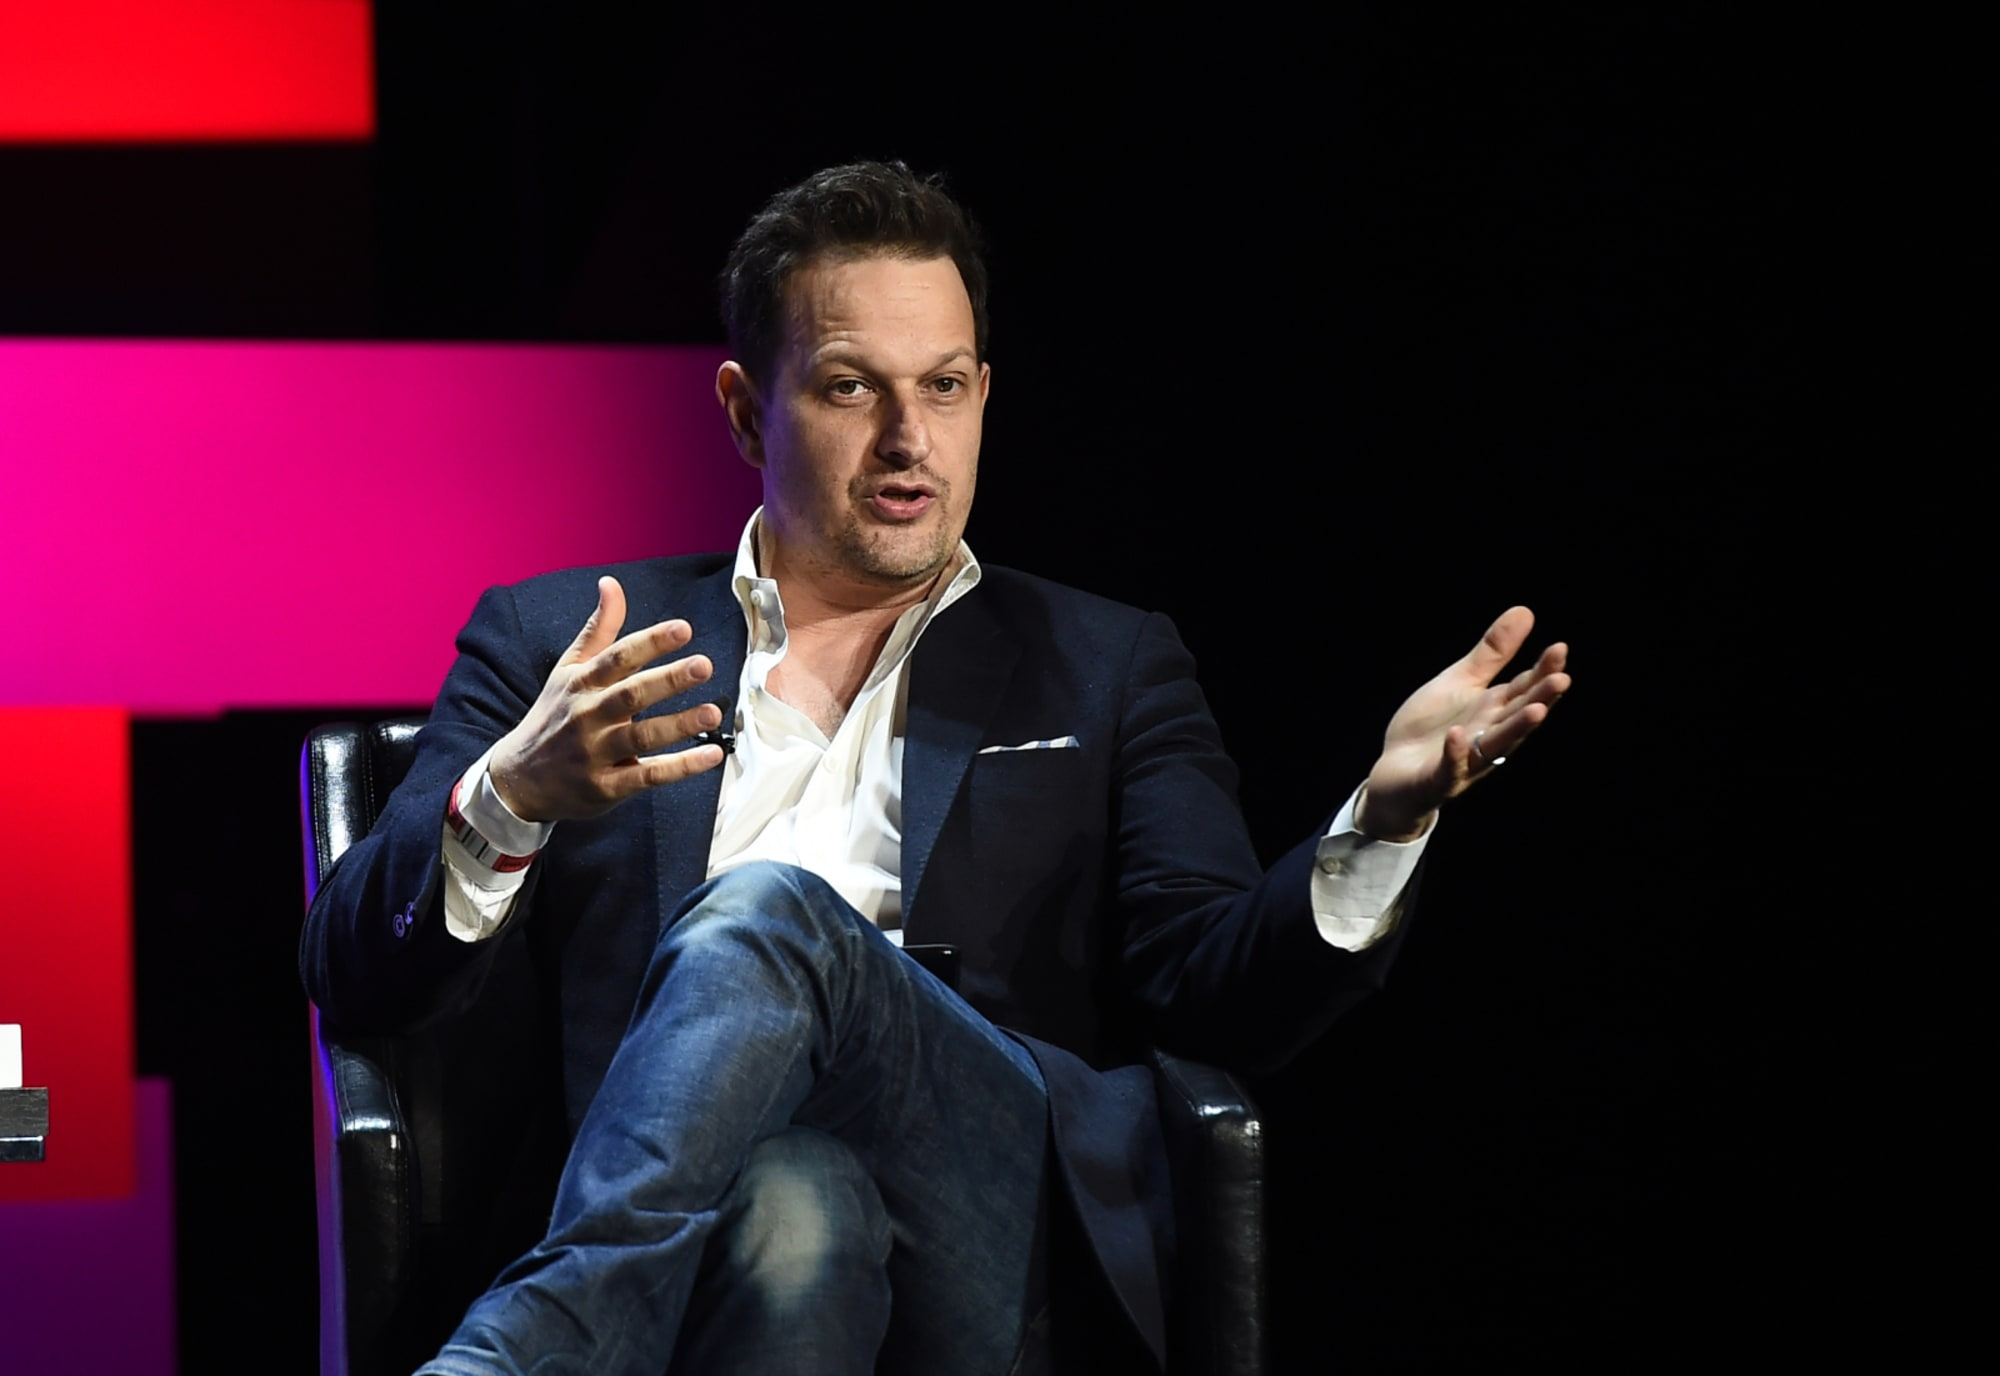 Happy Birthday Josh Charles One Of Netflix S Underrated Stars All orders are custom made and most ship worldwide within 24 hours. happy birthday josh charles one of